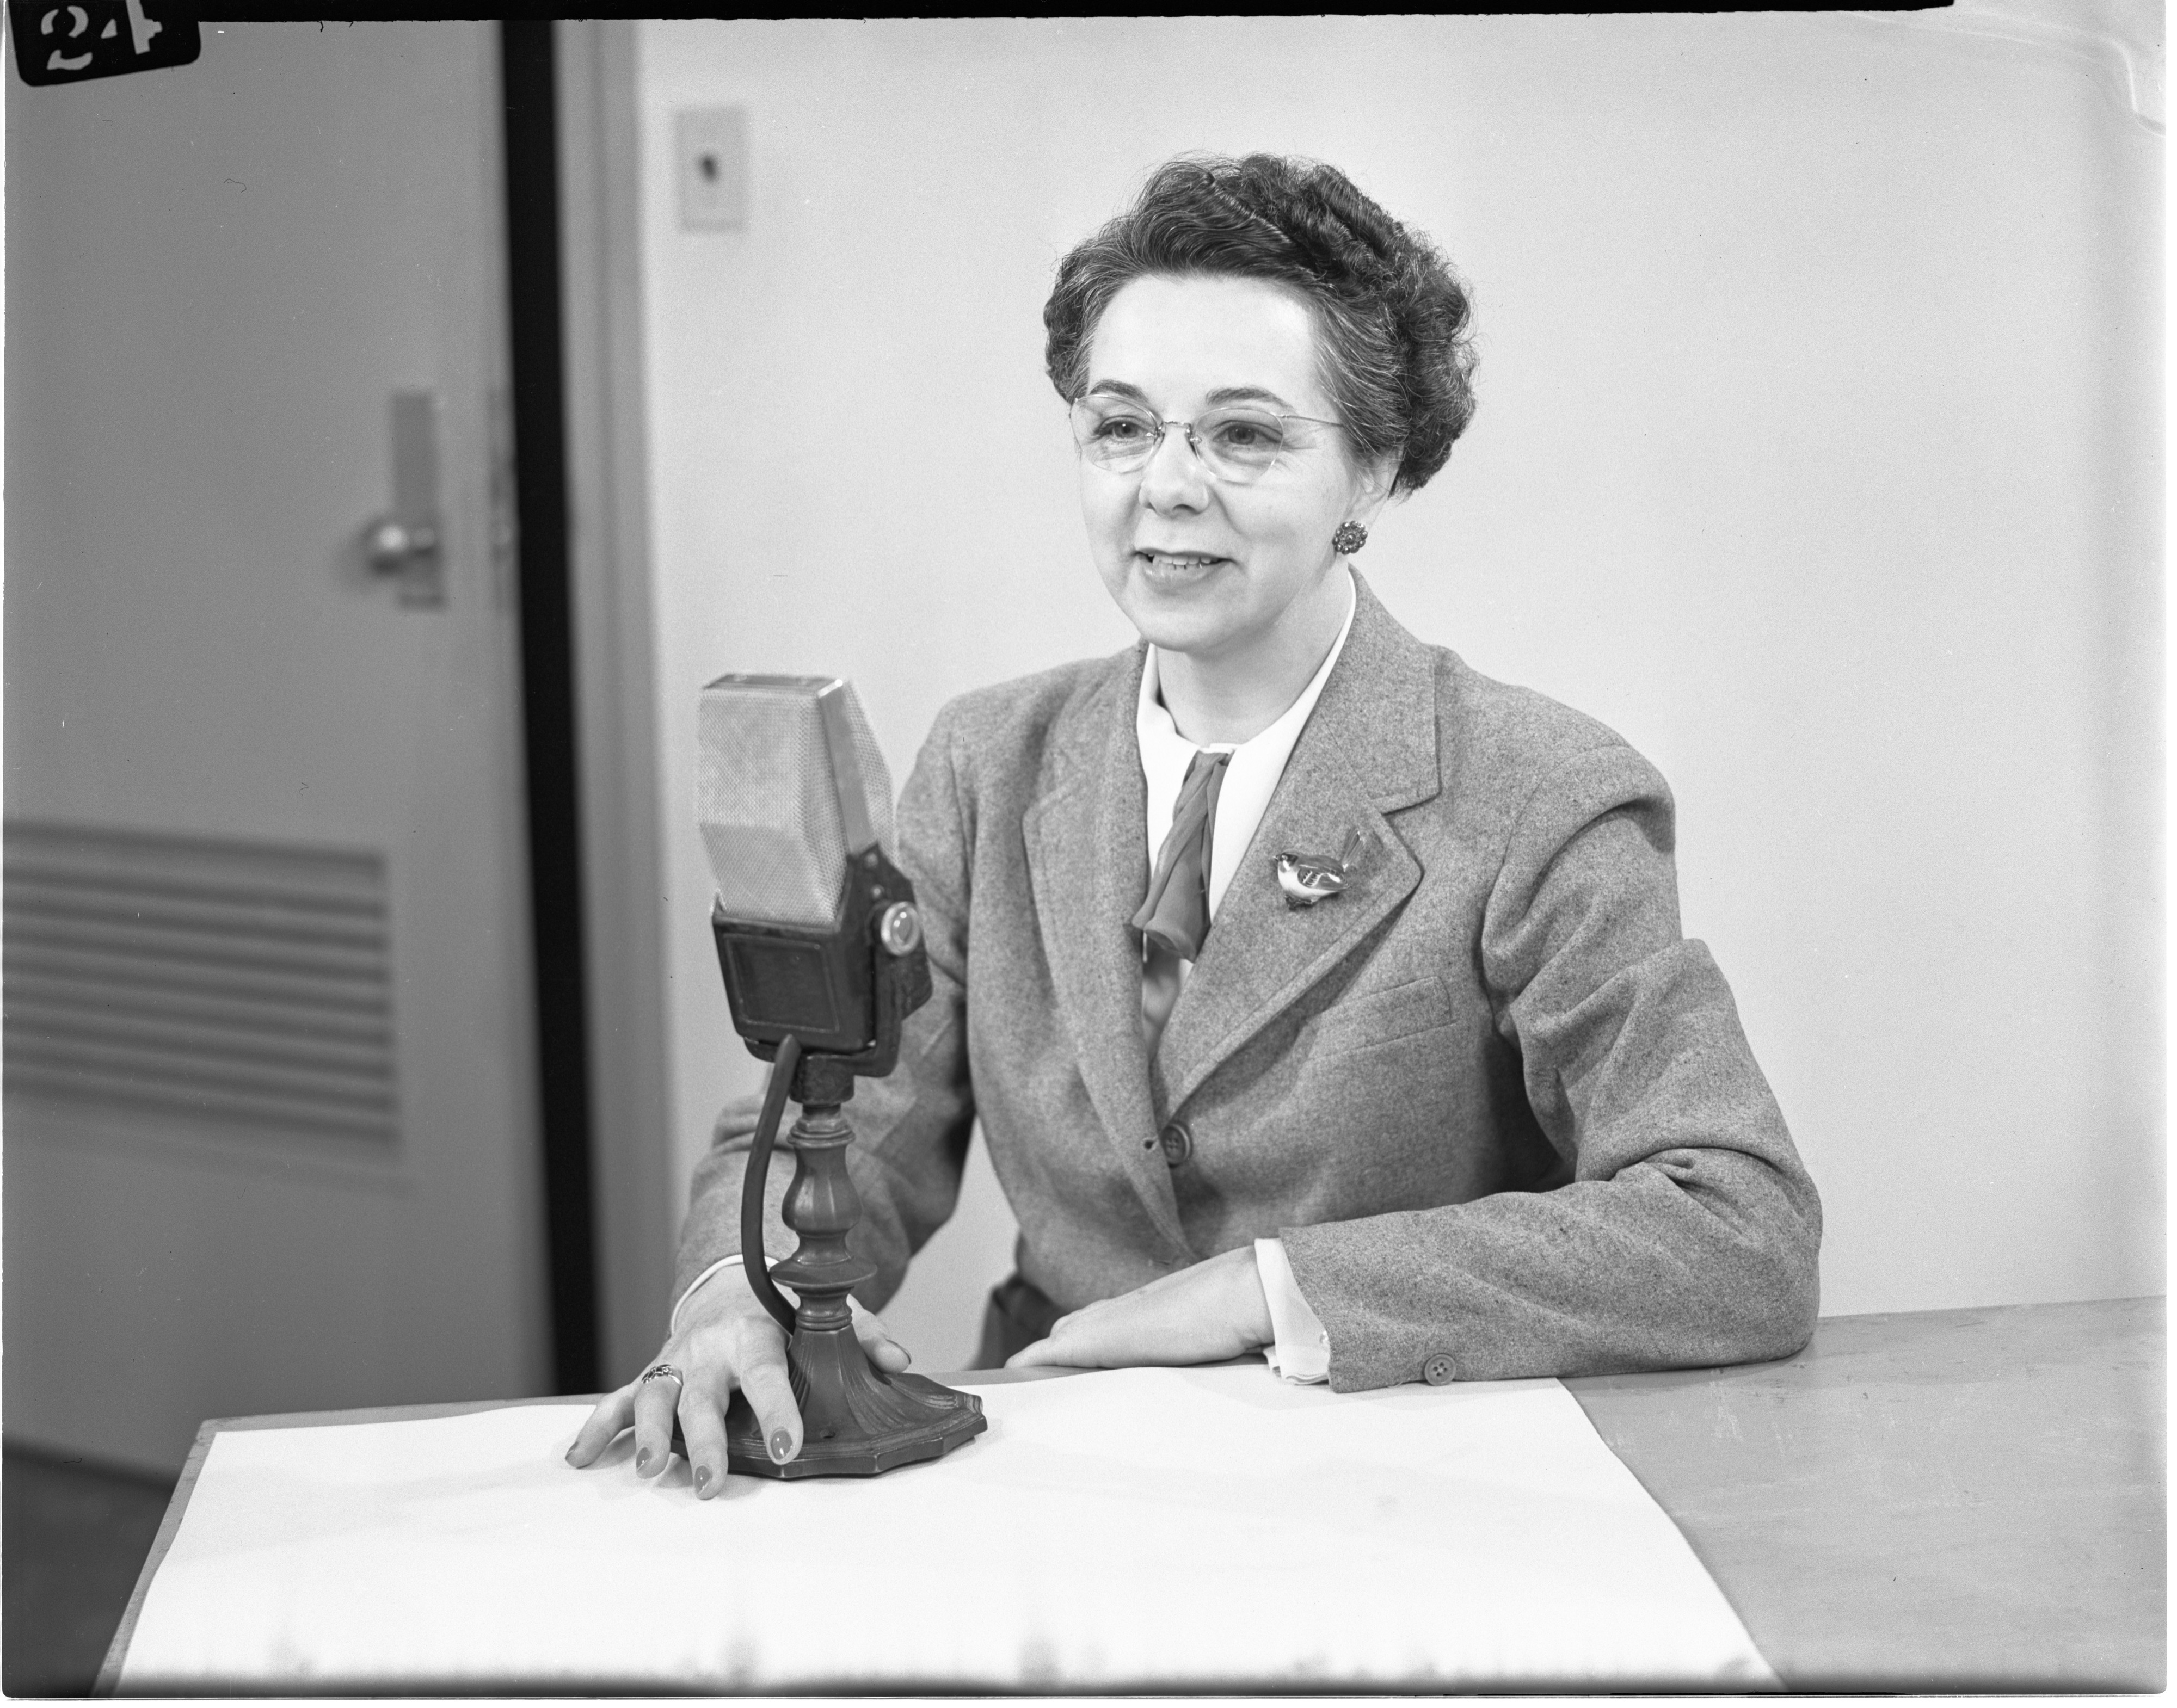 Margaret Nickerson Martin, National Radio Chairman For The American Federation Of The Physically Handicapped, May 1948 image